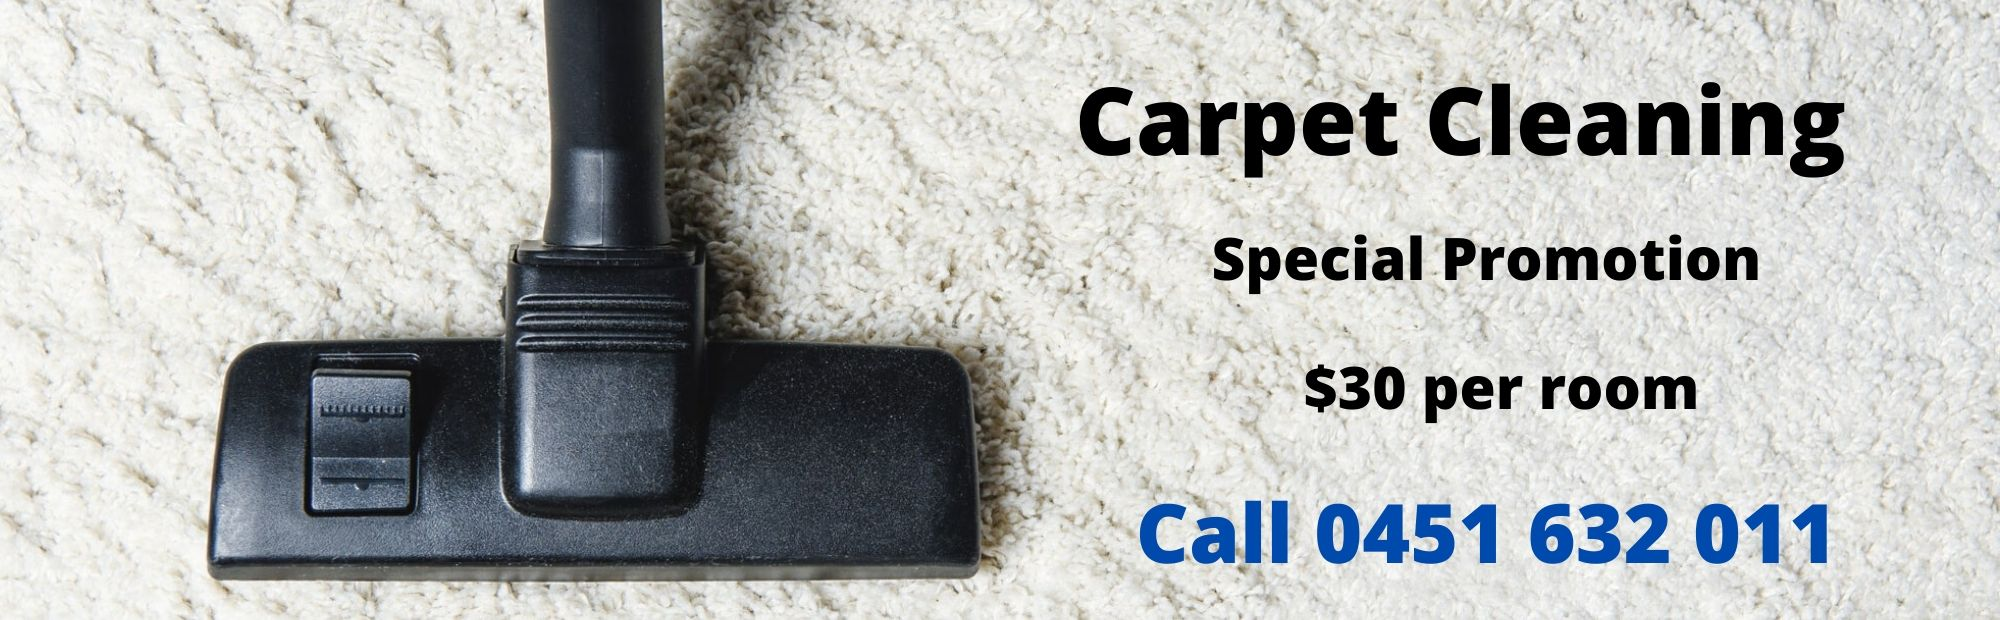 carpet cleaning special price